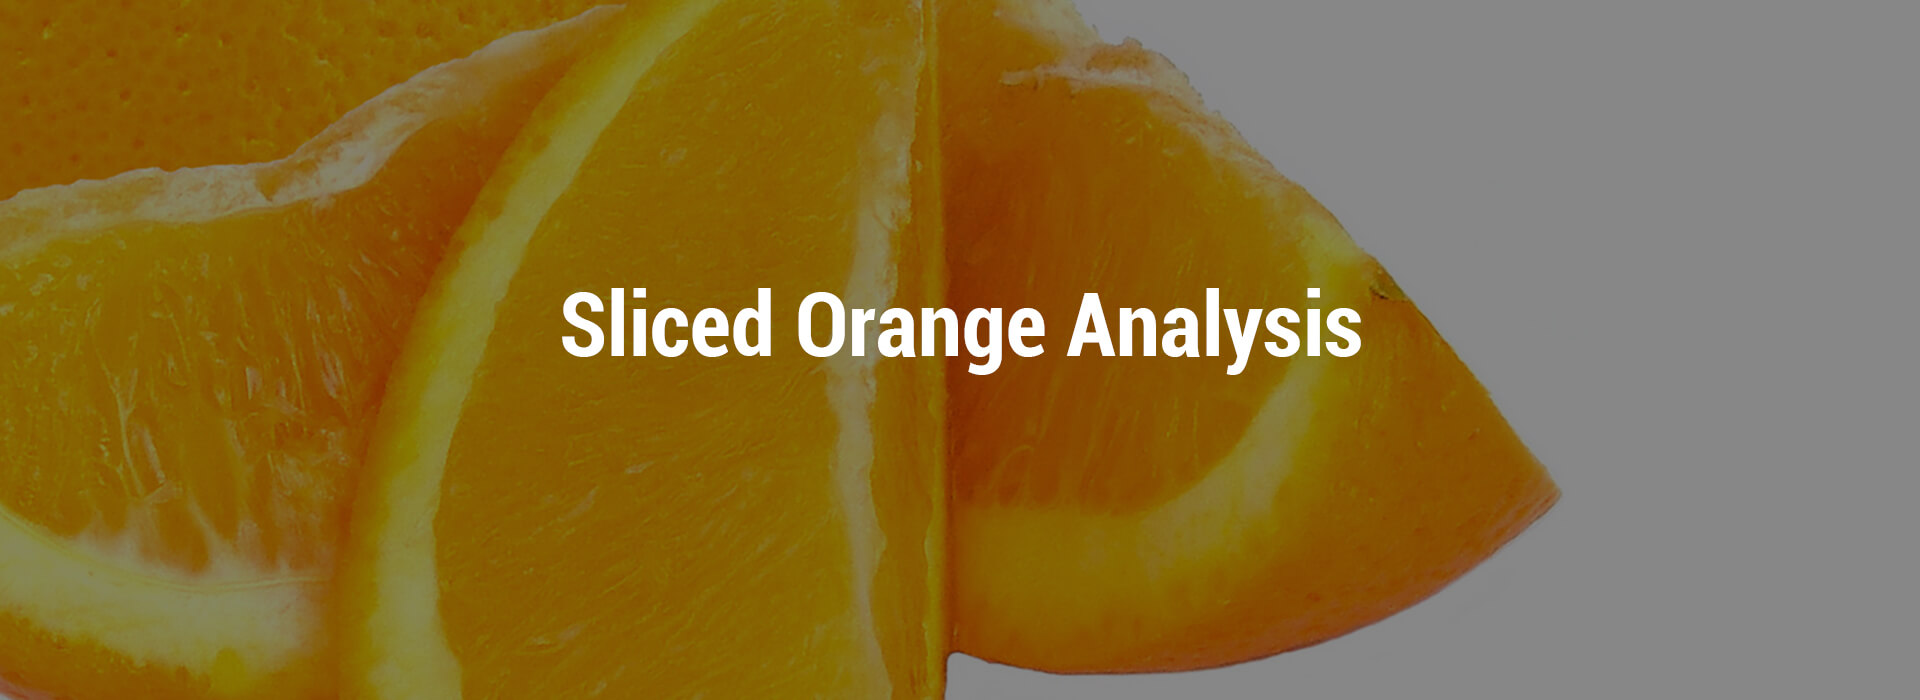 LVHS-sliced-orange-header